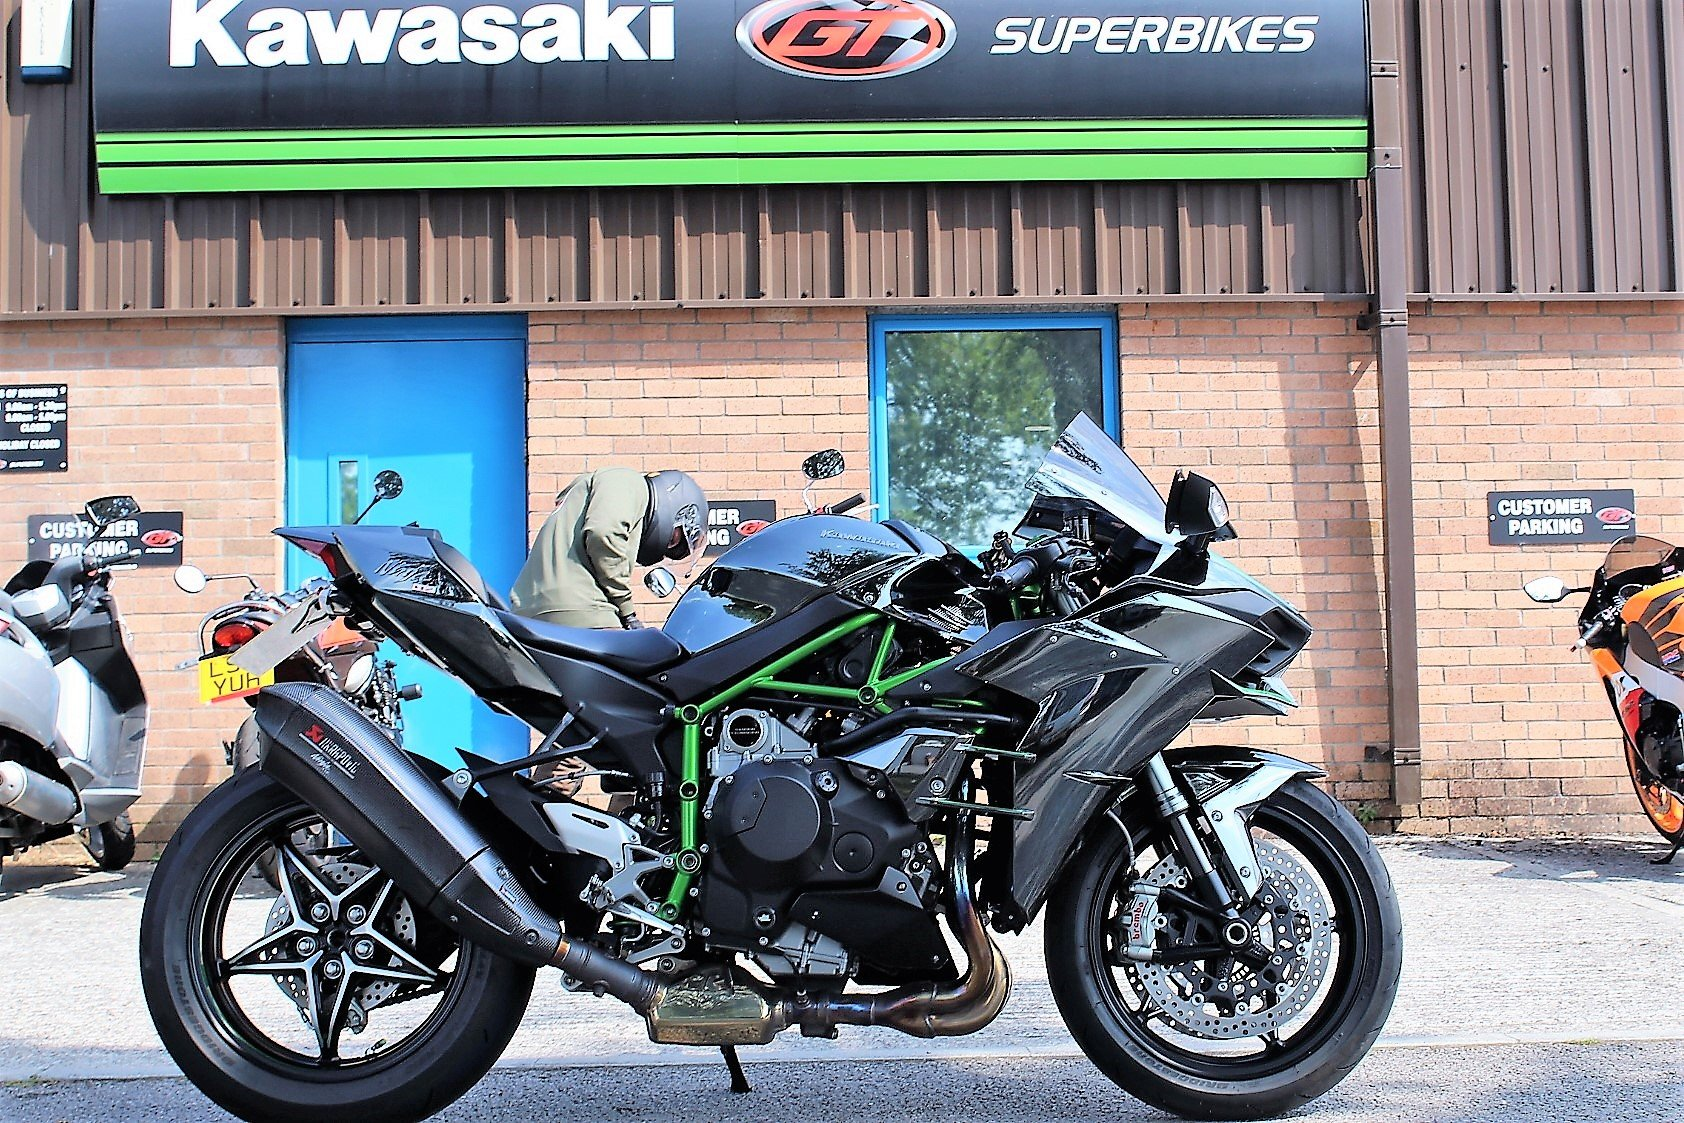 2015 15 Kawasaki NINJA H2 Supercharged Supersport For Sale (picture 1 of 6)